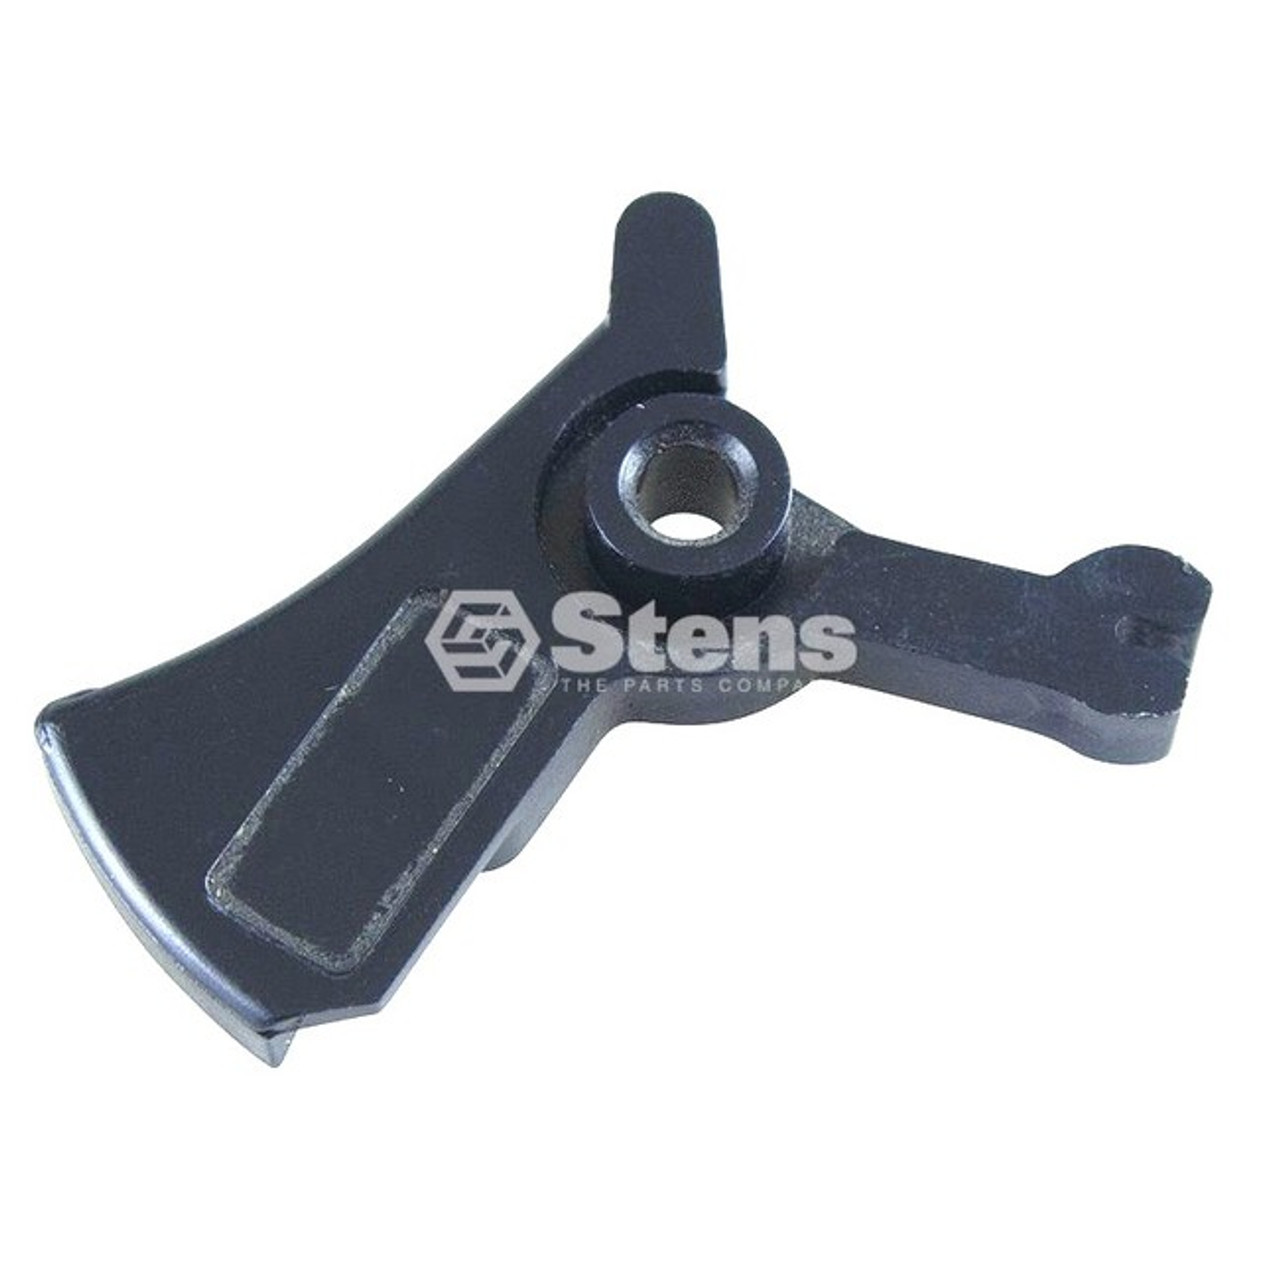 044 046 MS 230 MS 250 Throttle Trigger for STIHL 021 023 025 029 039 MS 210